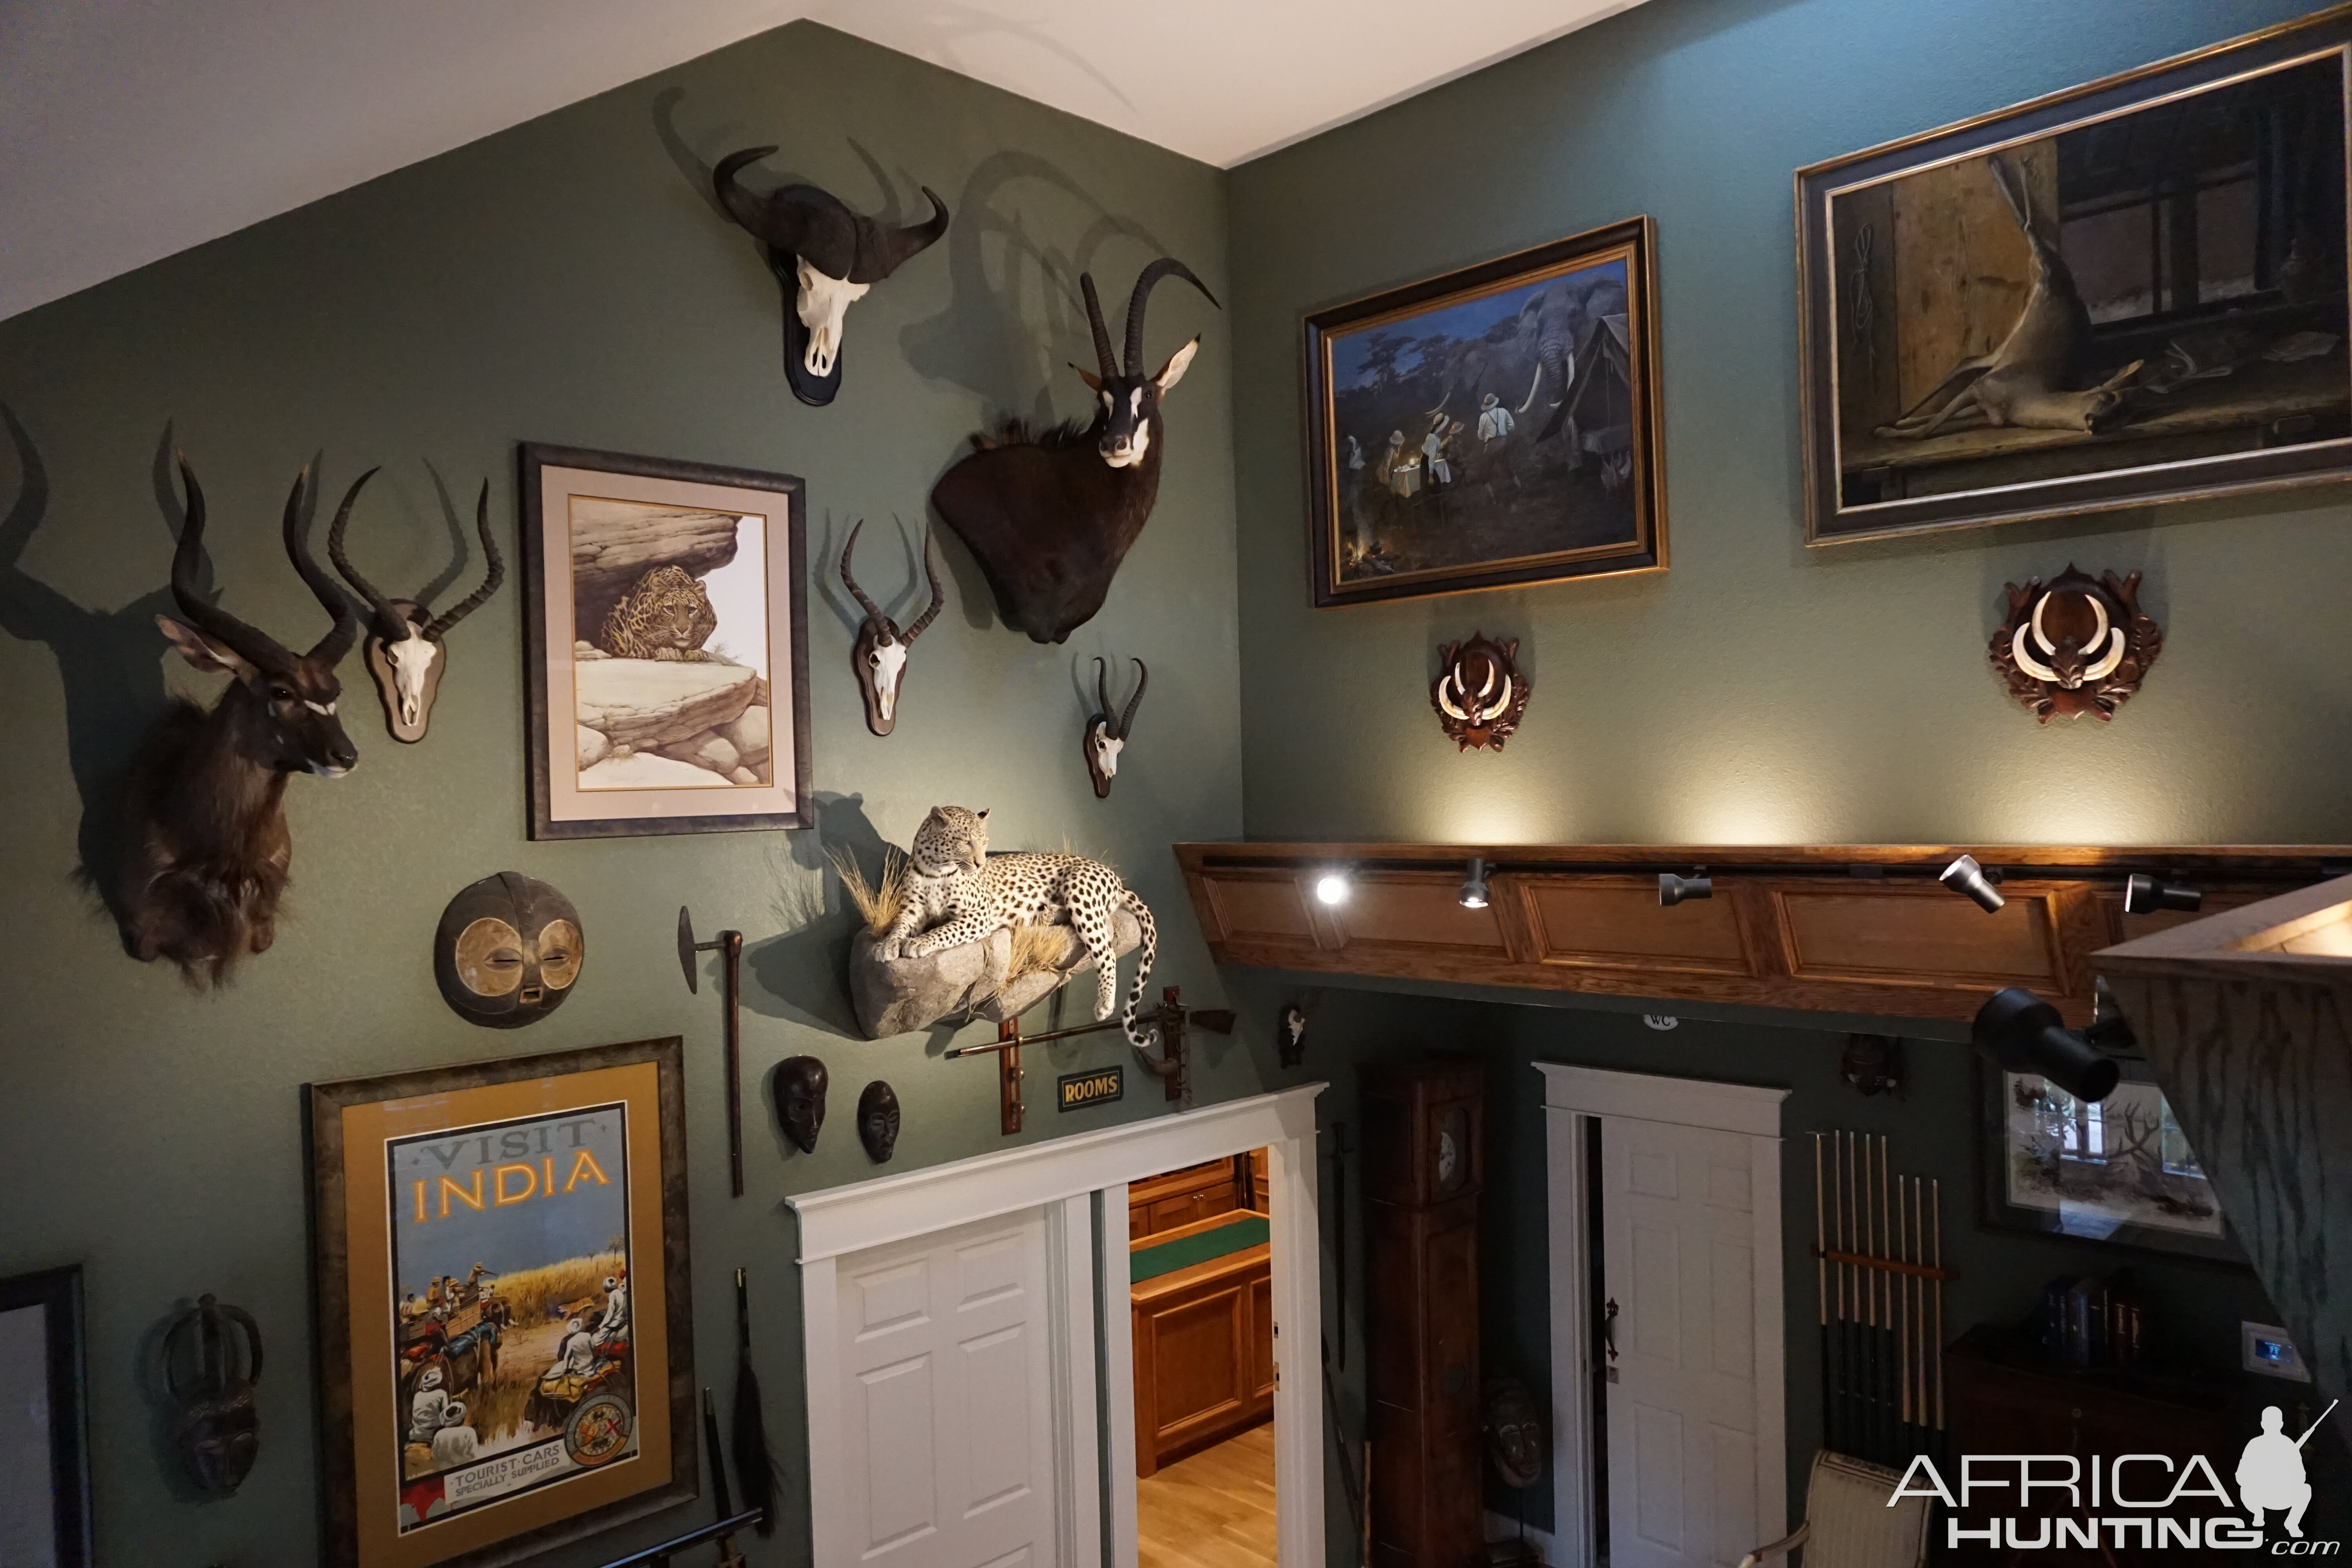 What Are Best Colors To Paint Walls In A Trophy Room